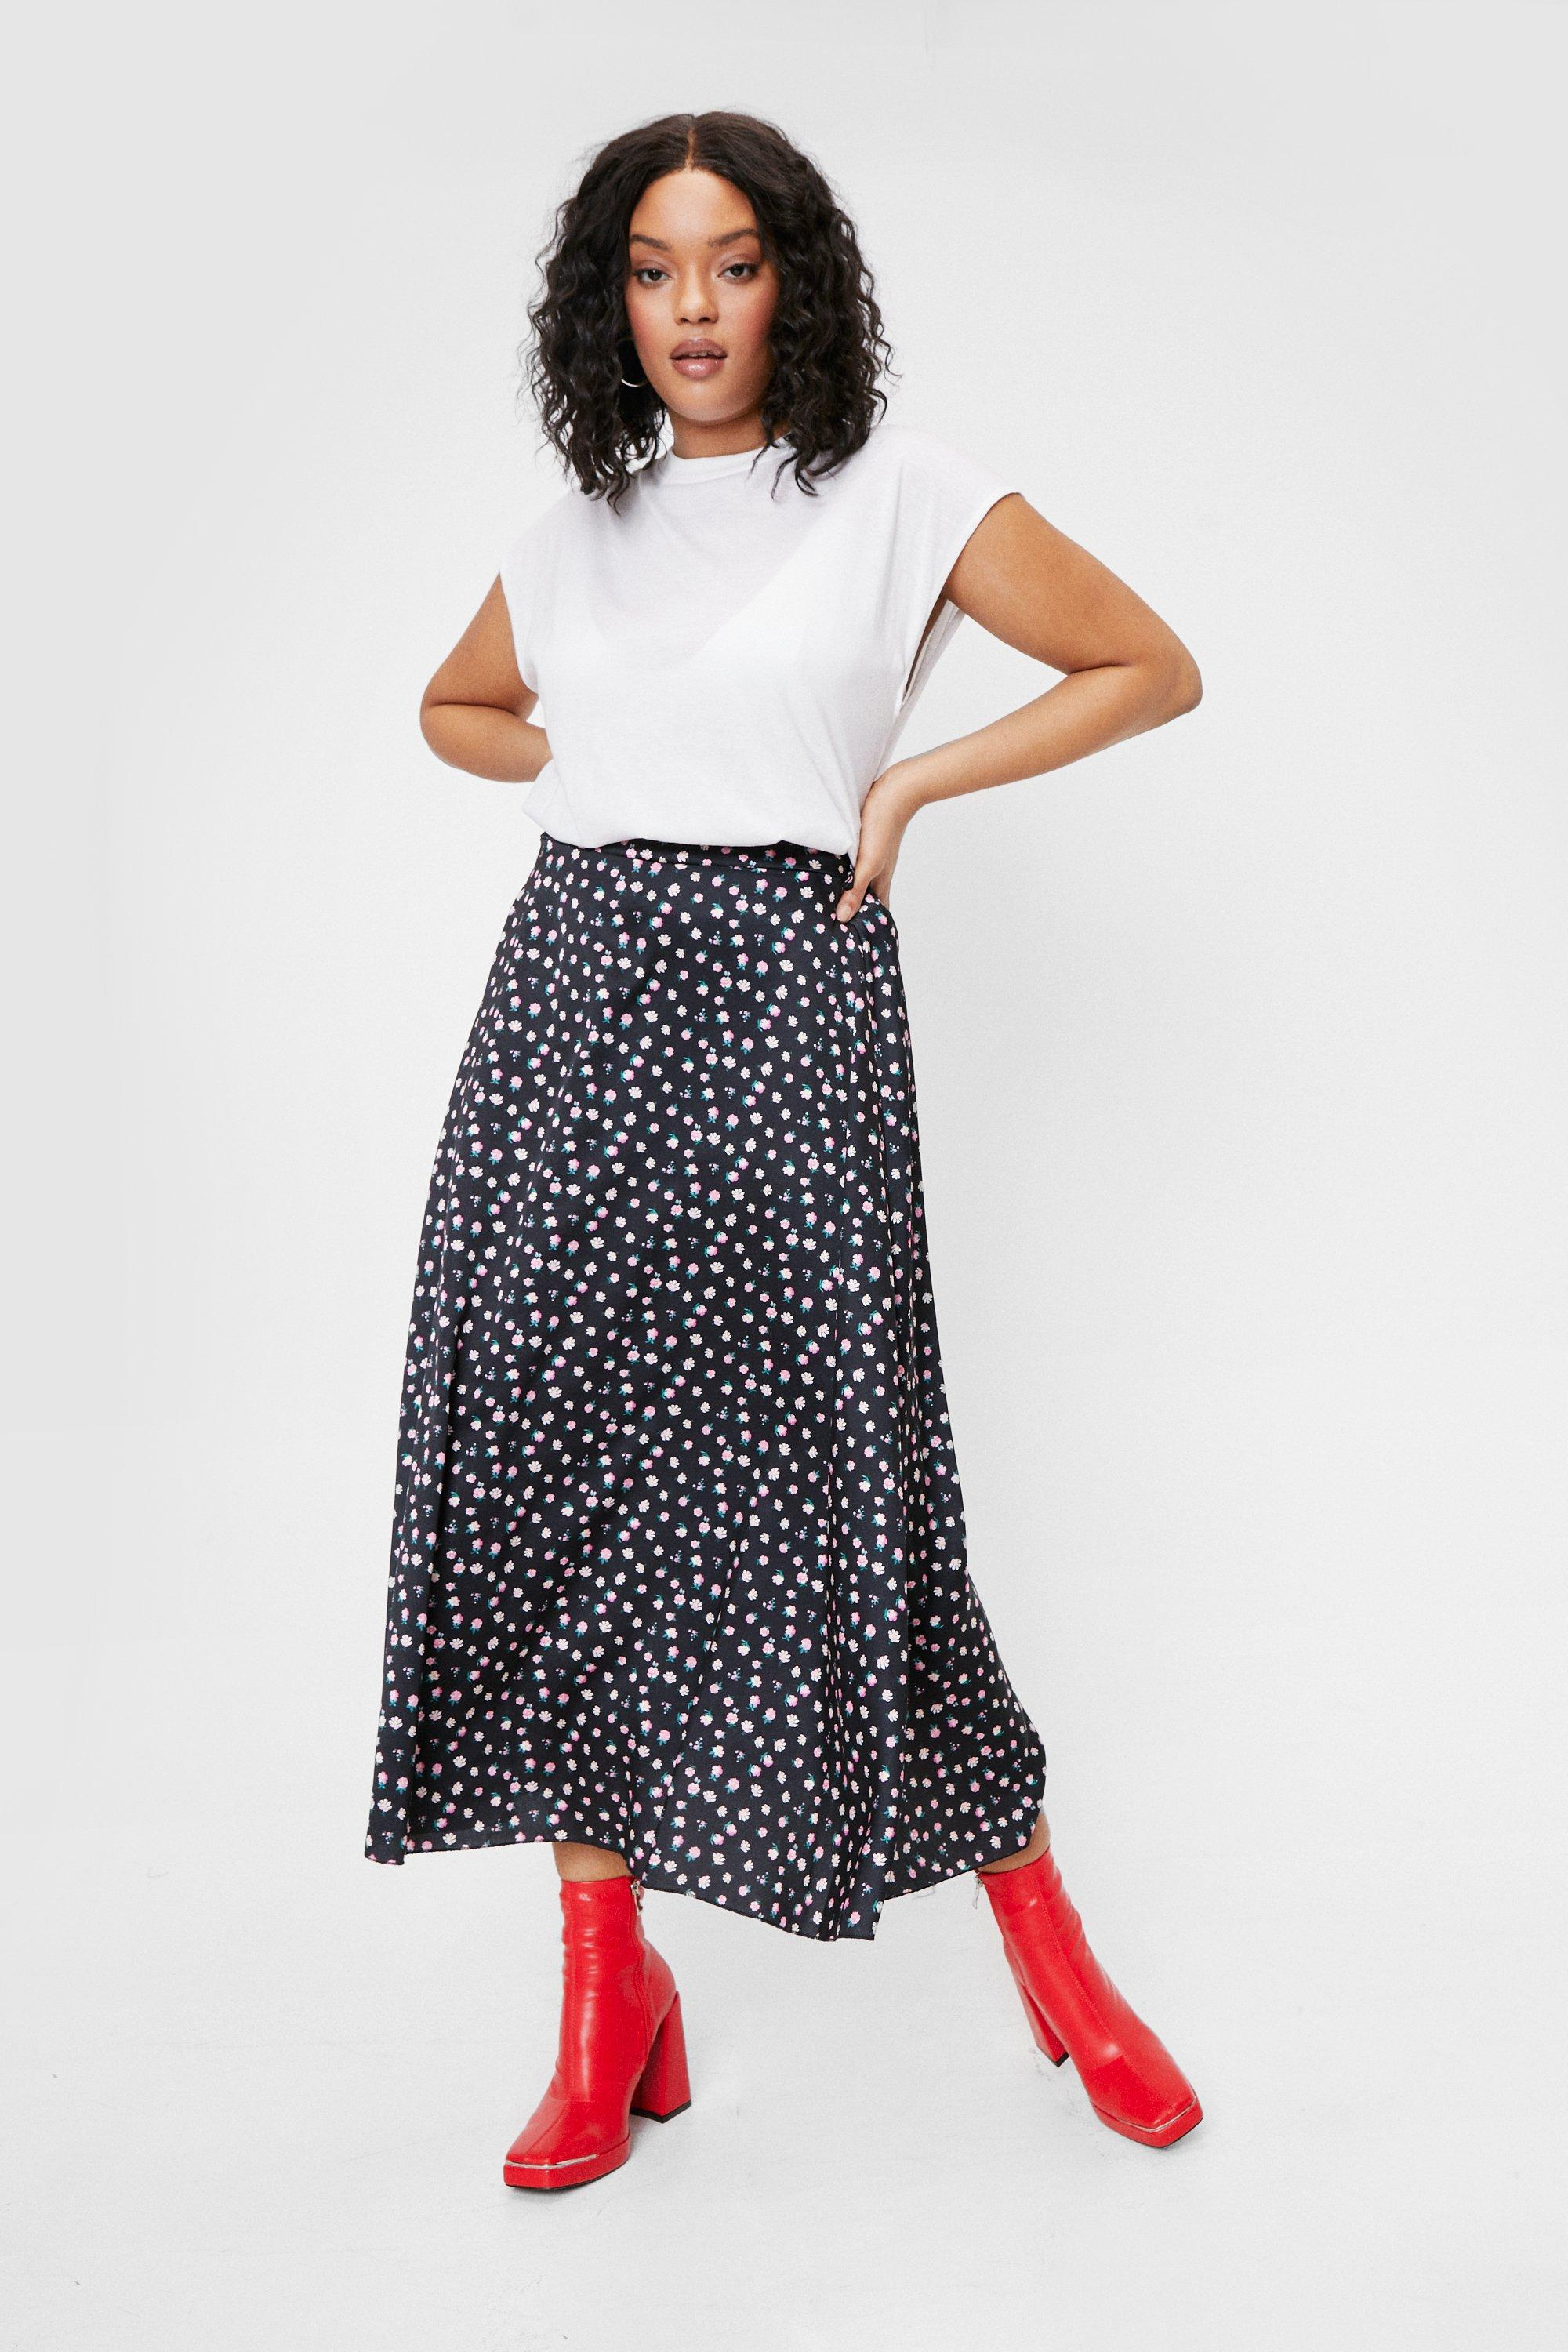 Plus Size Satin Floral Midi Skirt 8